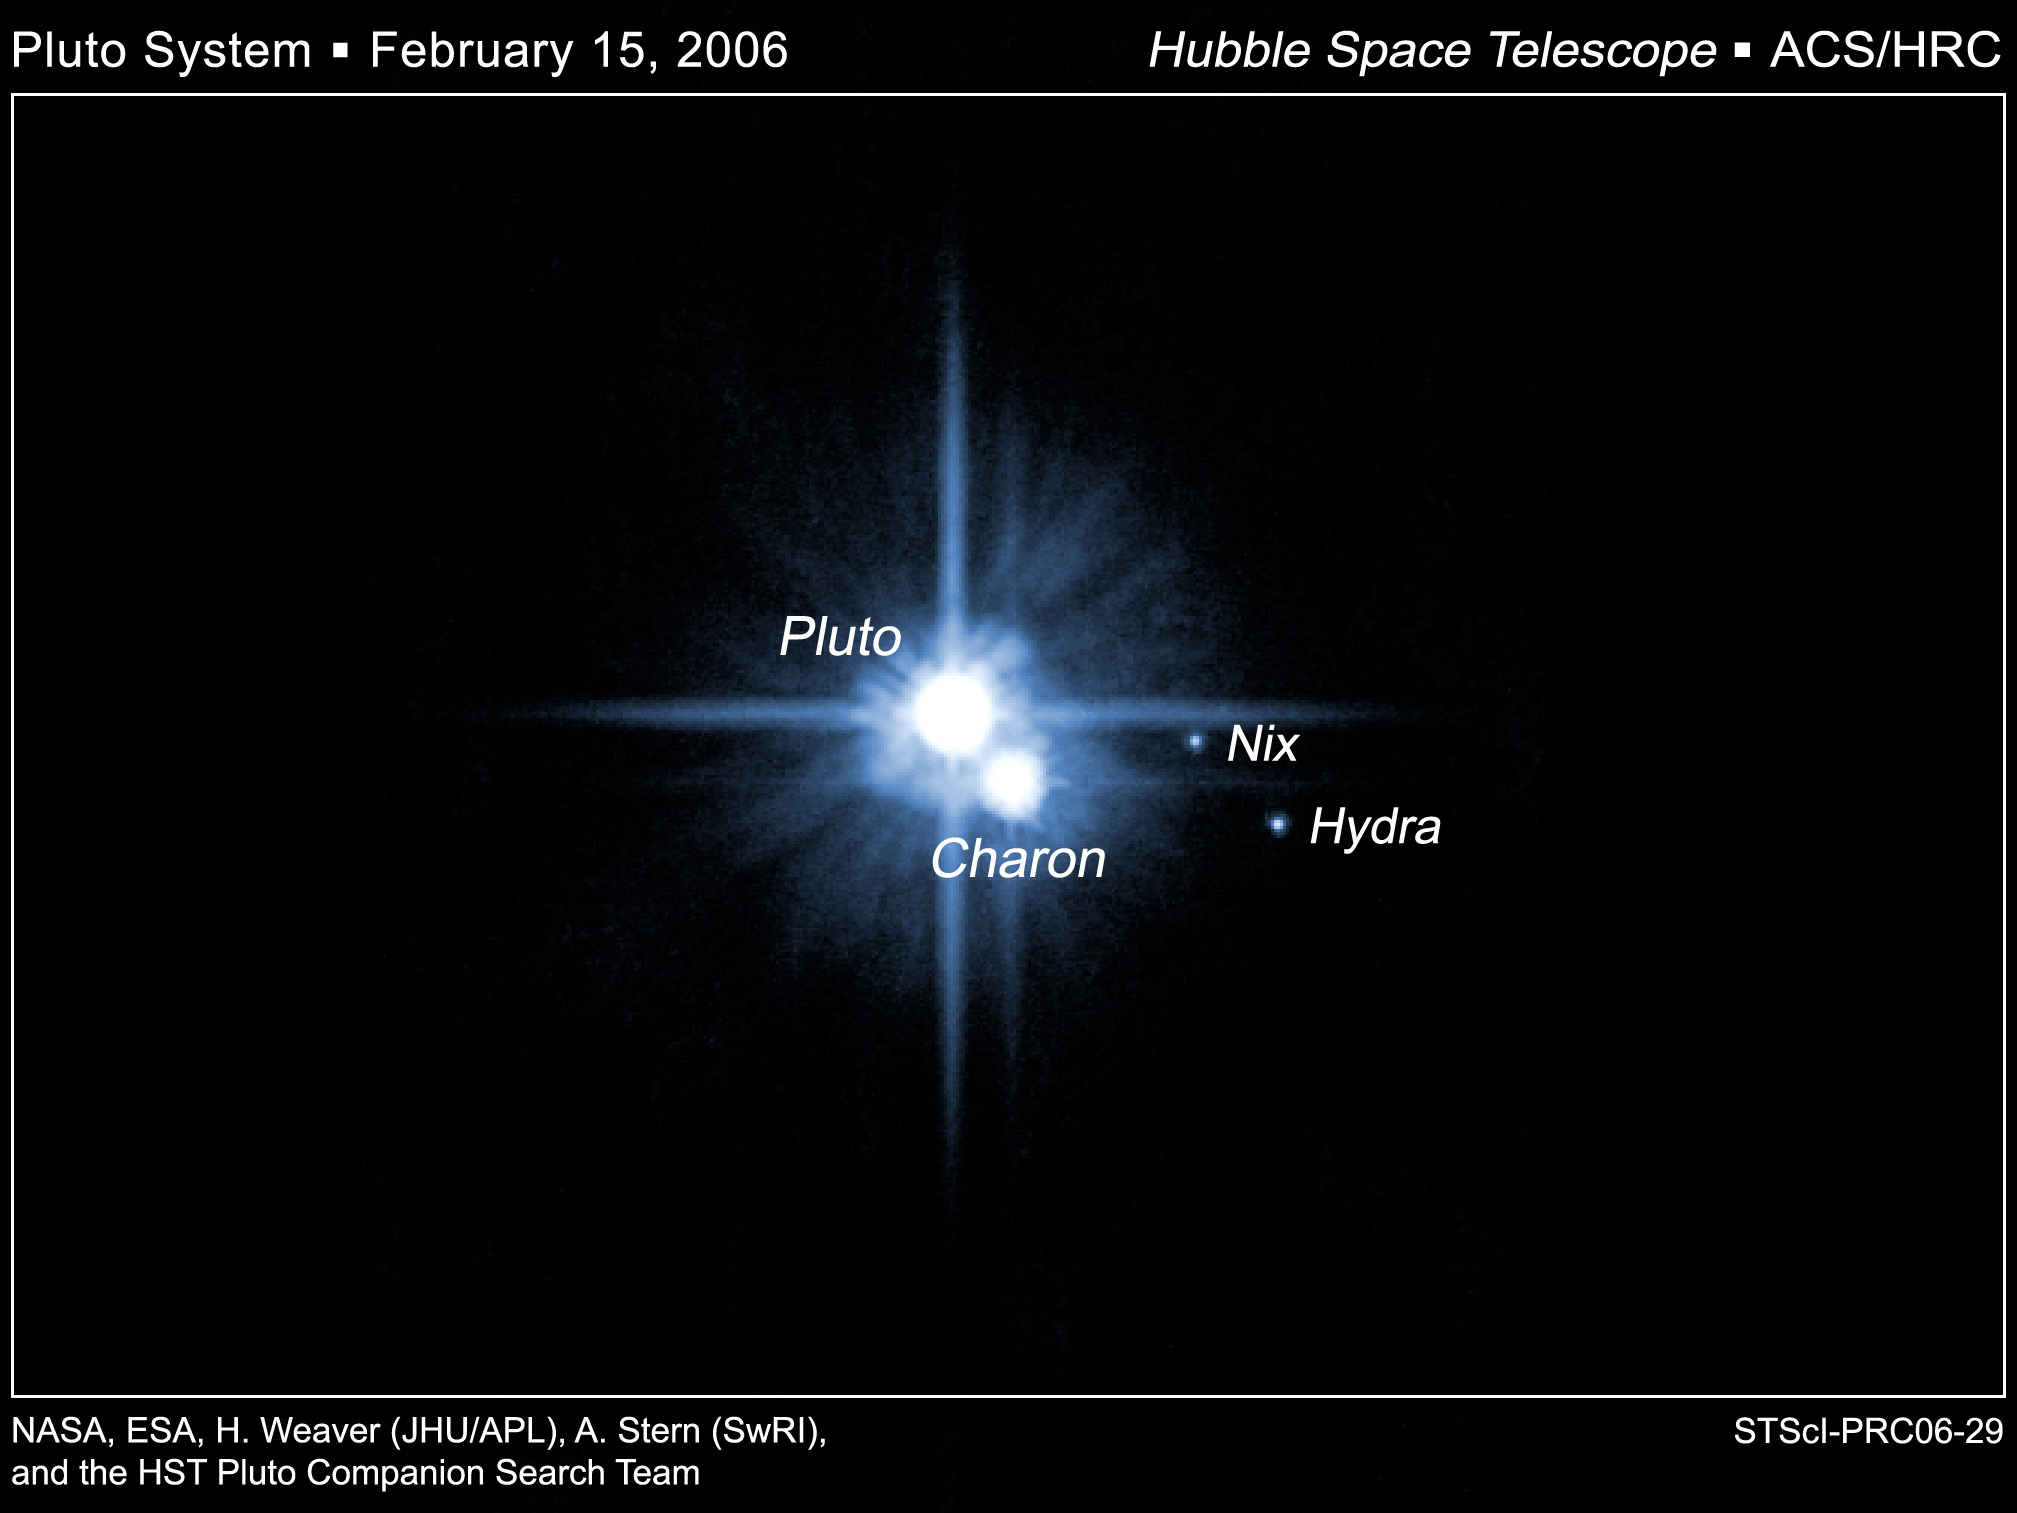 Pluto Moons Nix And Hydra S: The Life And Times Of Pluto